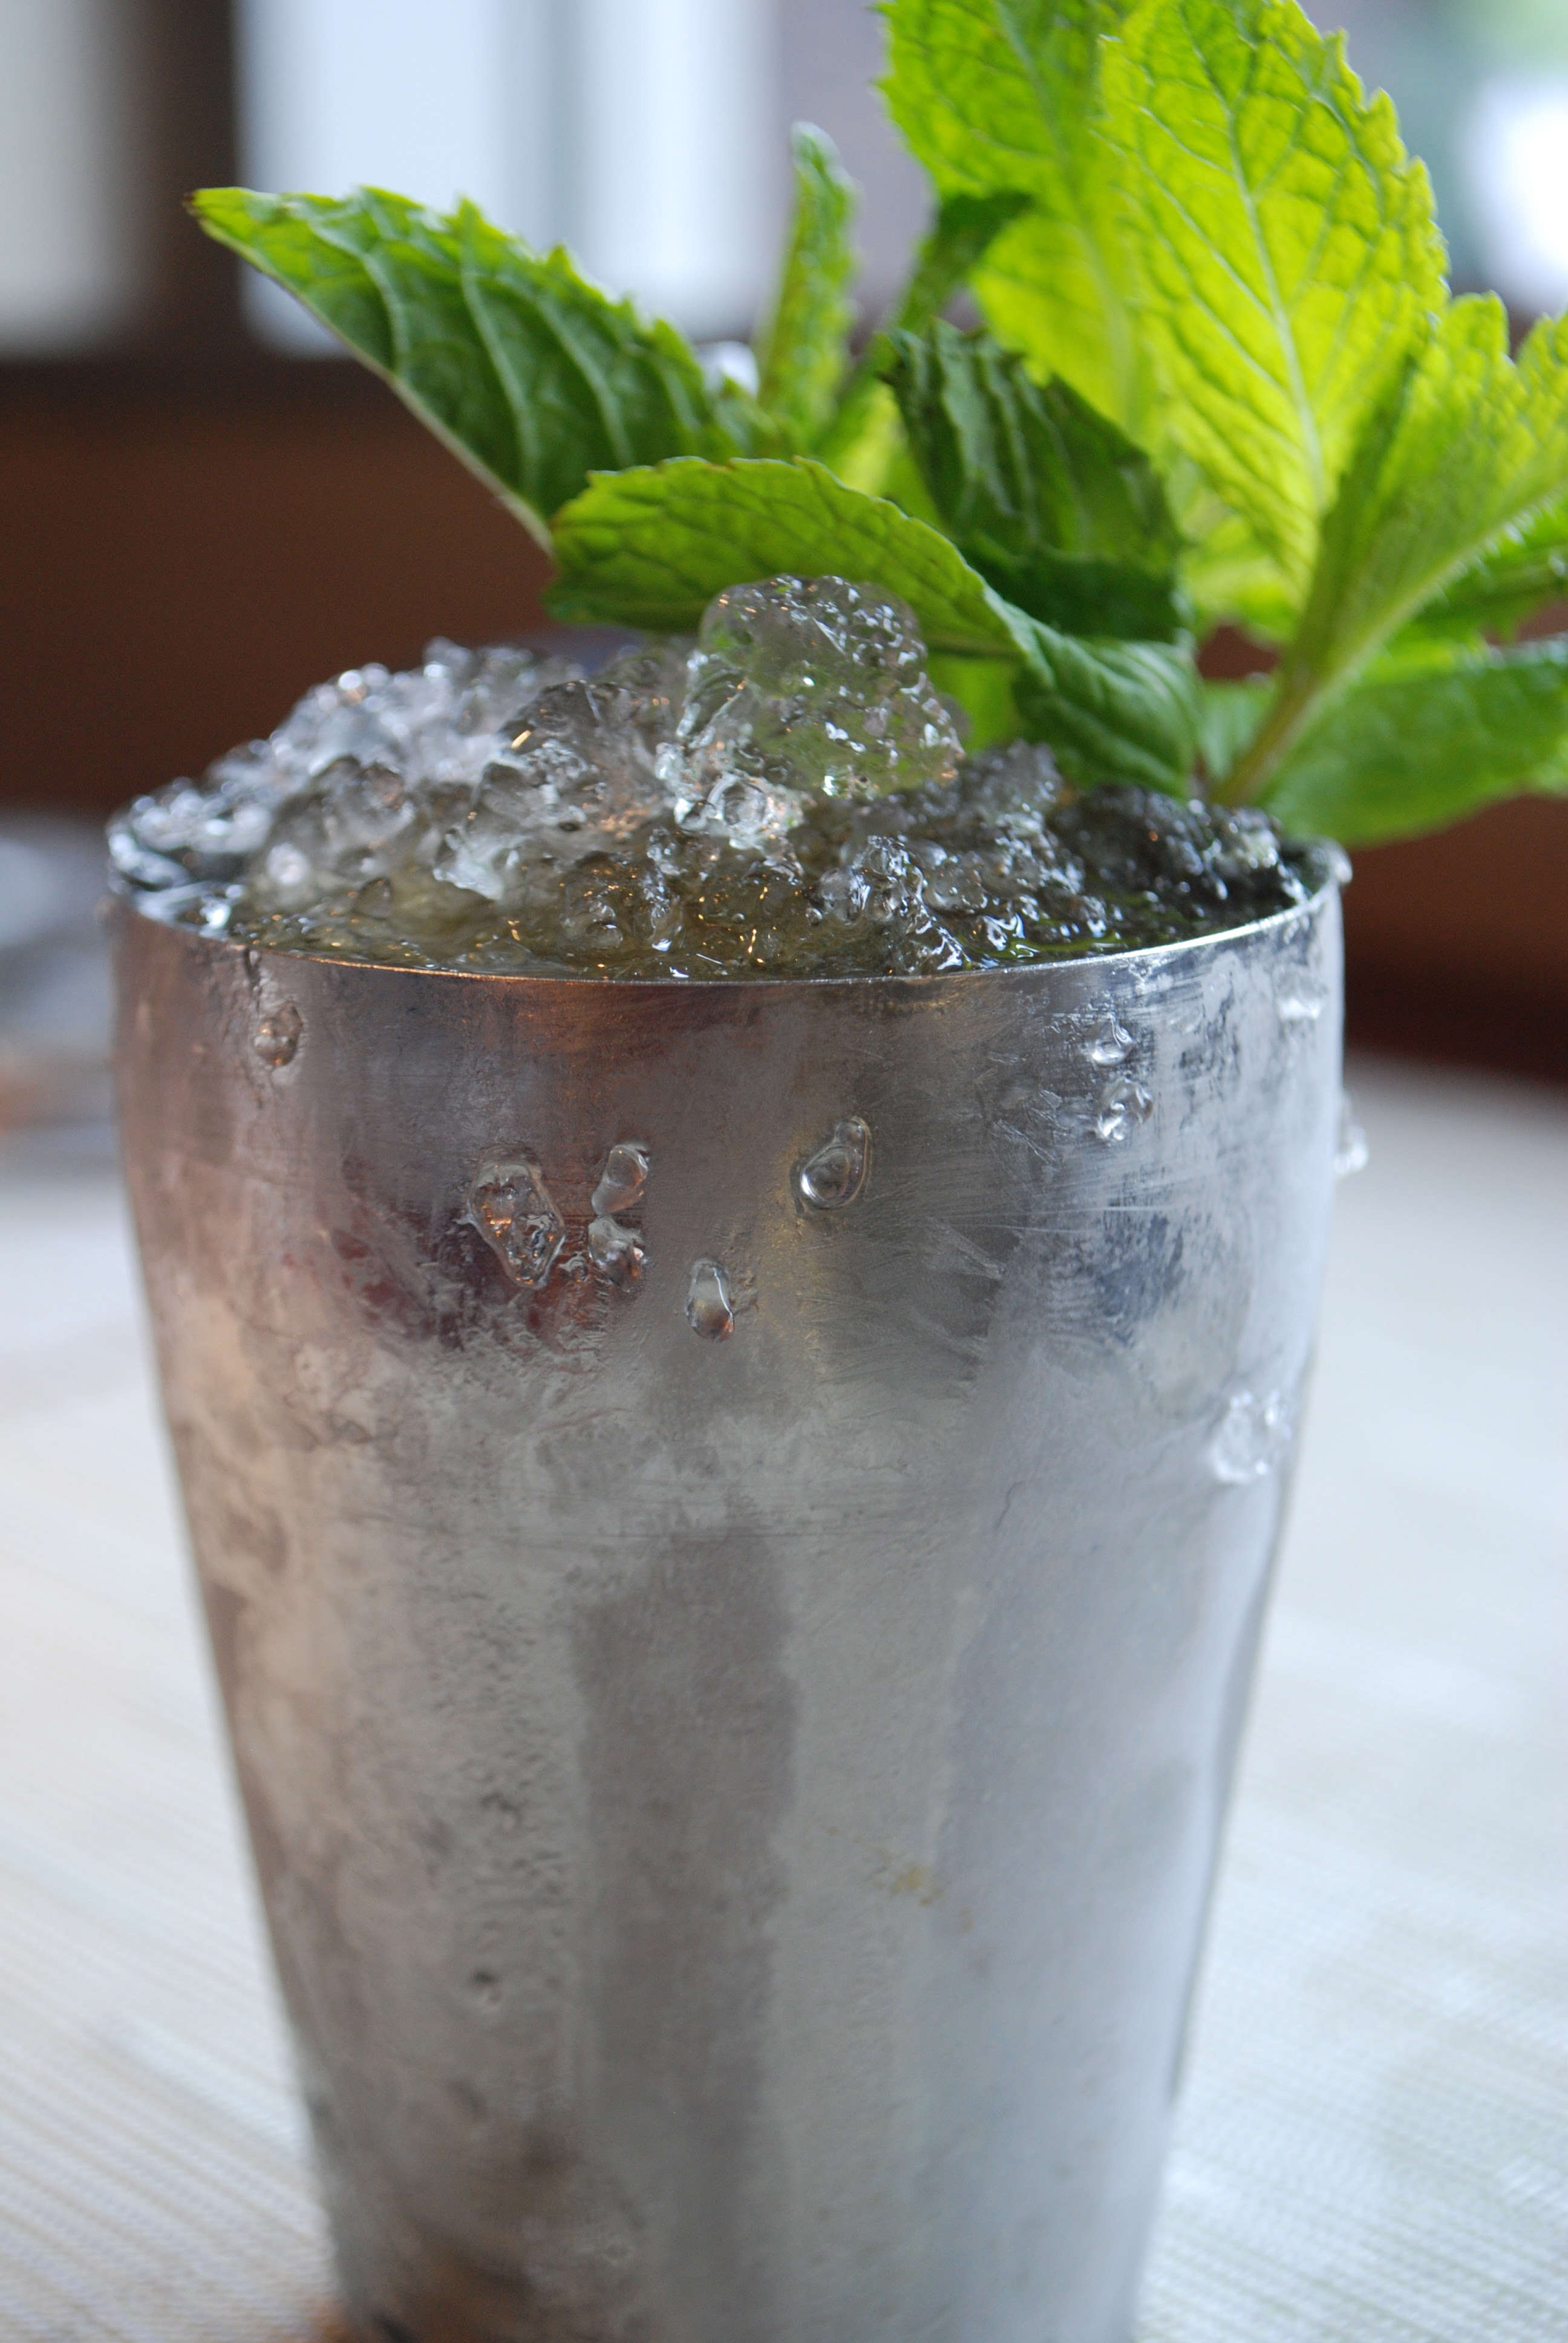 Acadiana will serve $5 mint juleps during the Kentucky Derby on Saturday. (Photo: Acadiana)